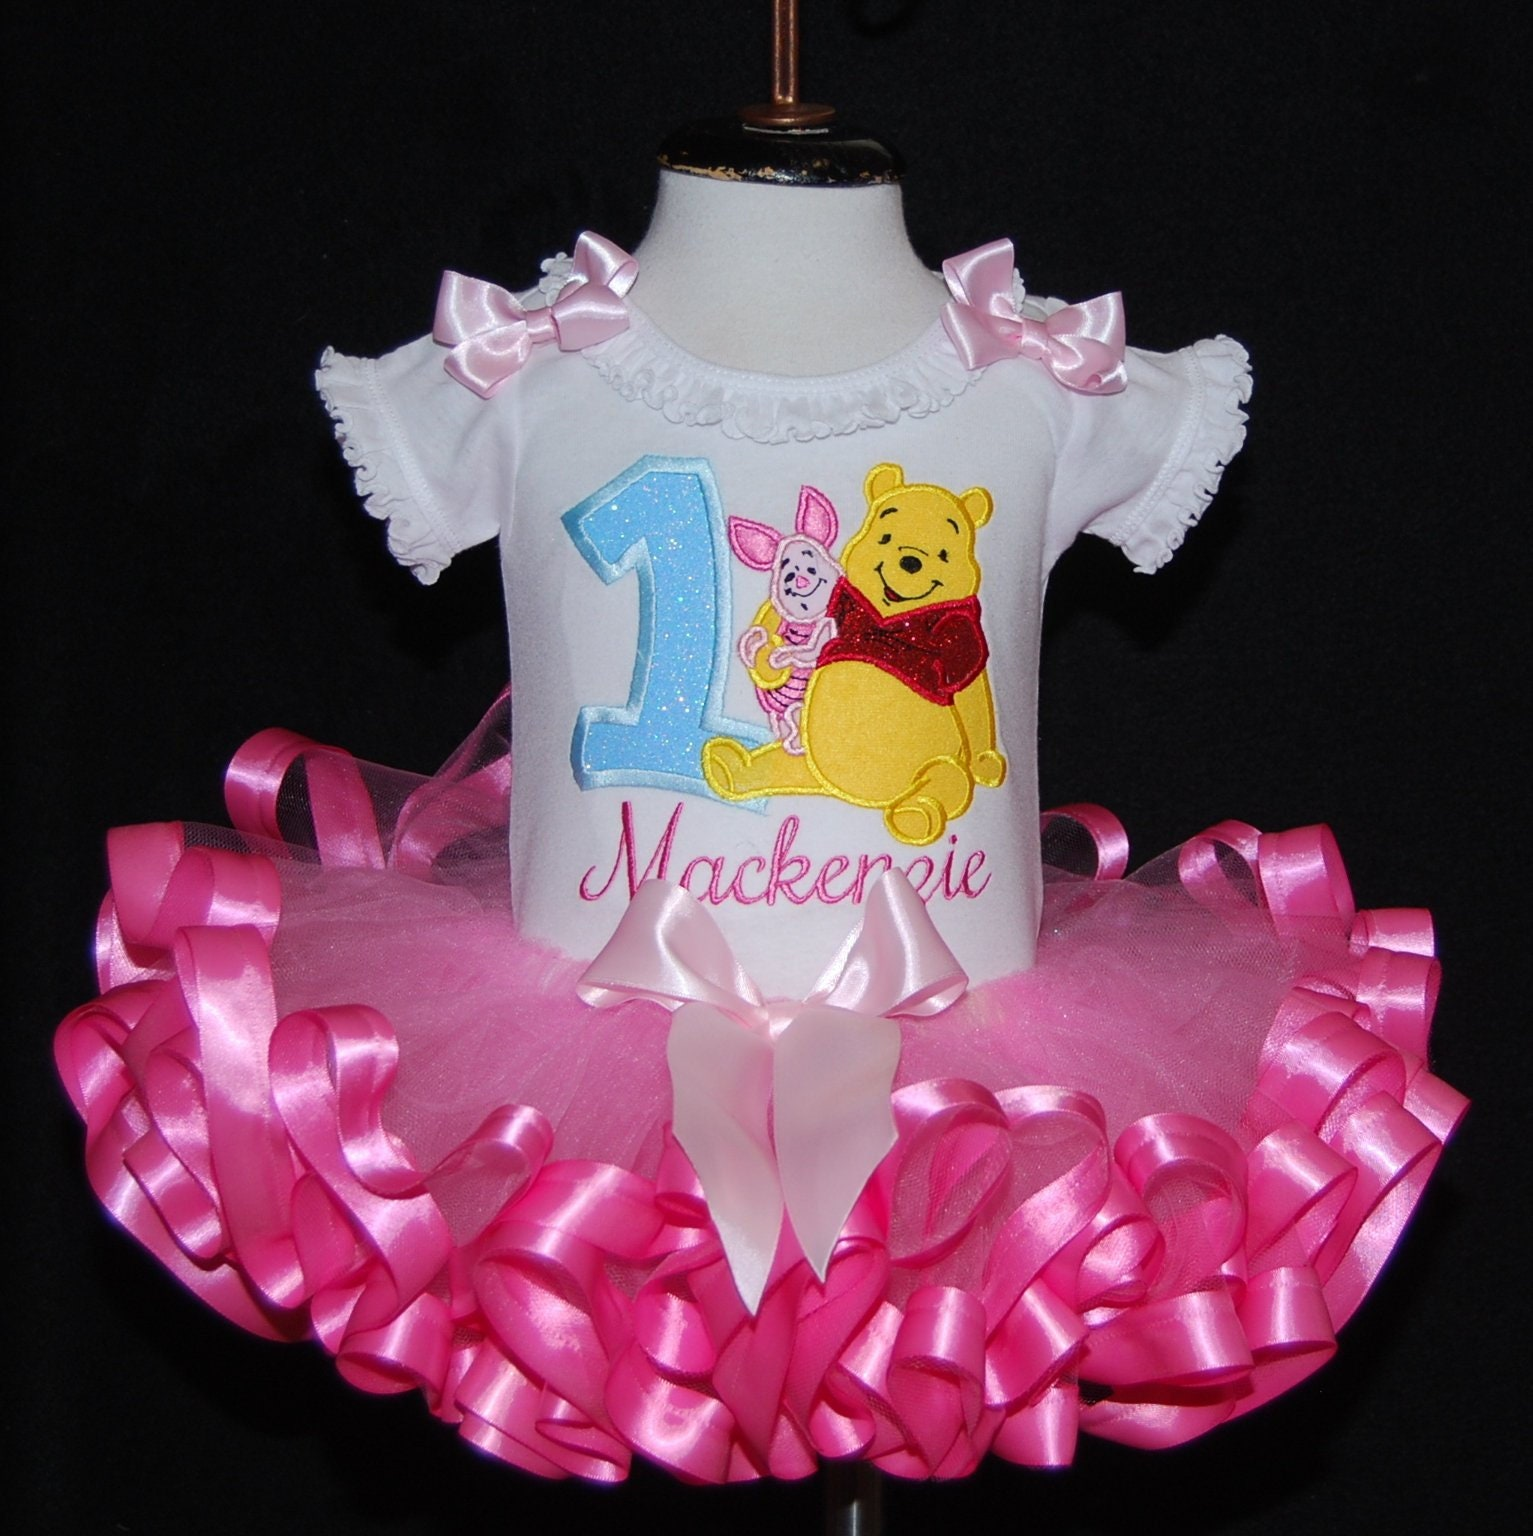 Winnie the Pooh birthday girl outfit , Pooh Bear birthday outfit 1st birthday outfit personalized cake smash birthday tutu dress ribbon tutu